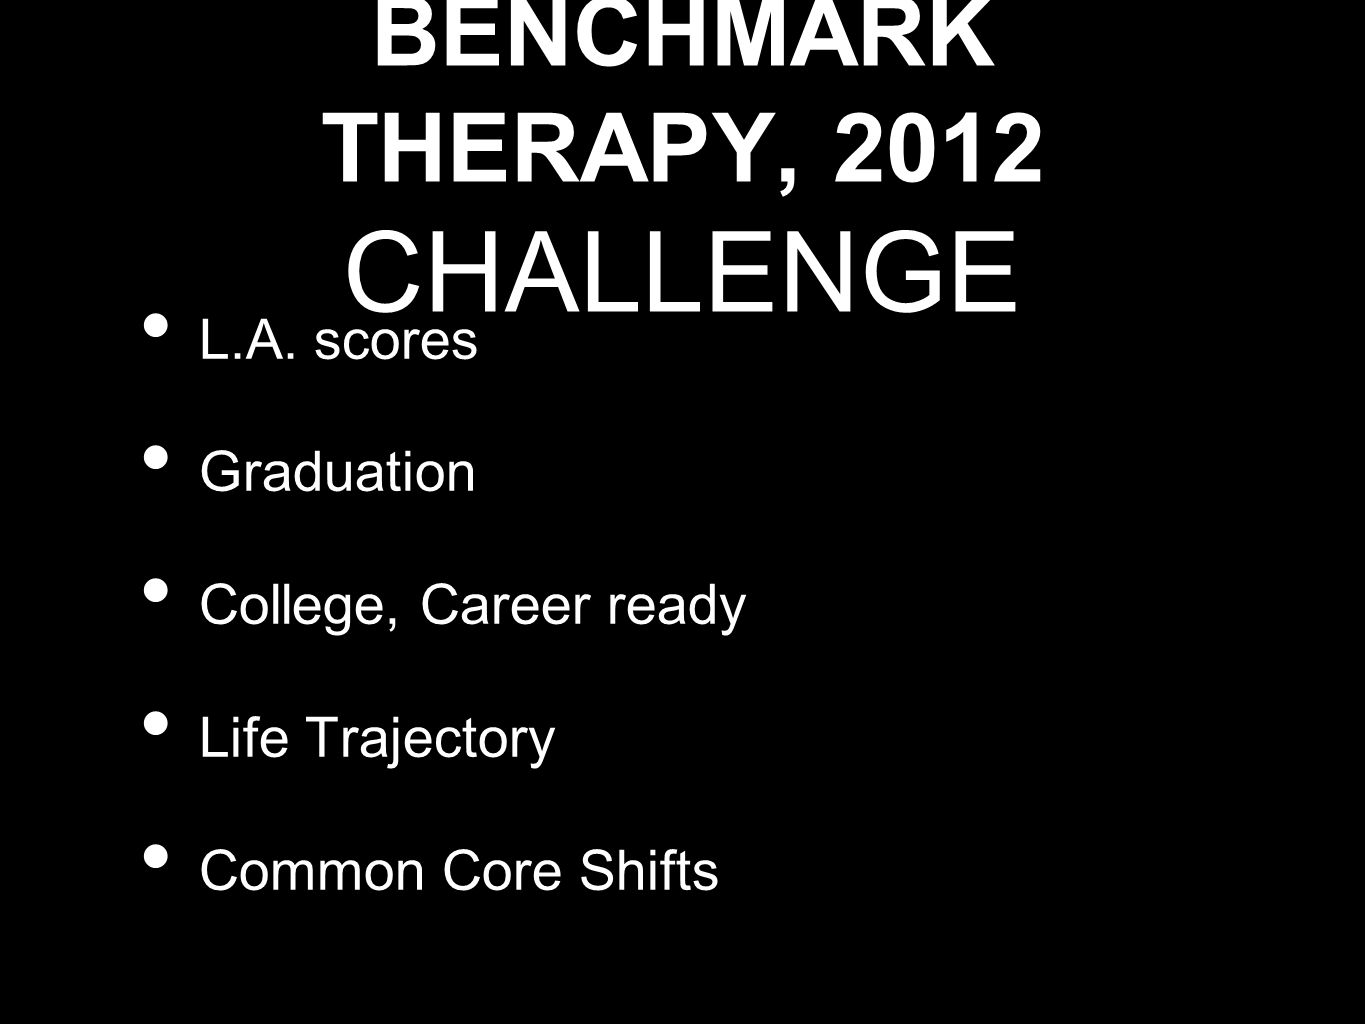 BENCHMARK THERAPY, 2012 CHALLENGE L.A. scores Graduation College, Career ready Life Trajectory Common Core Shifts